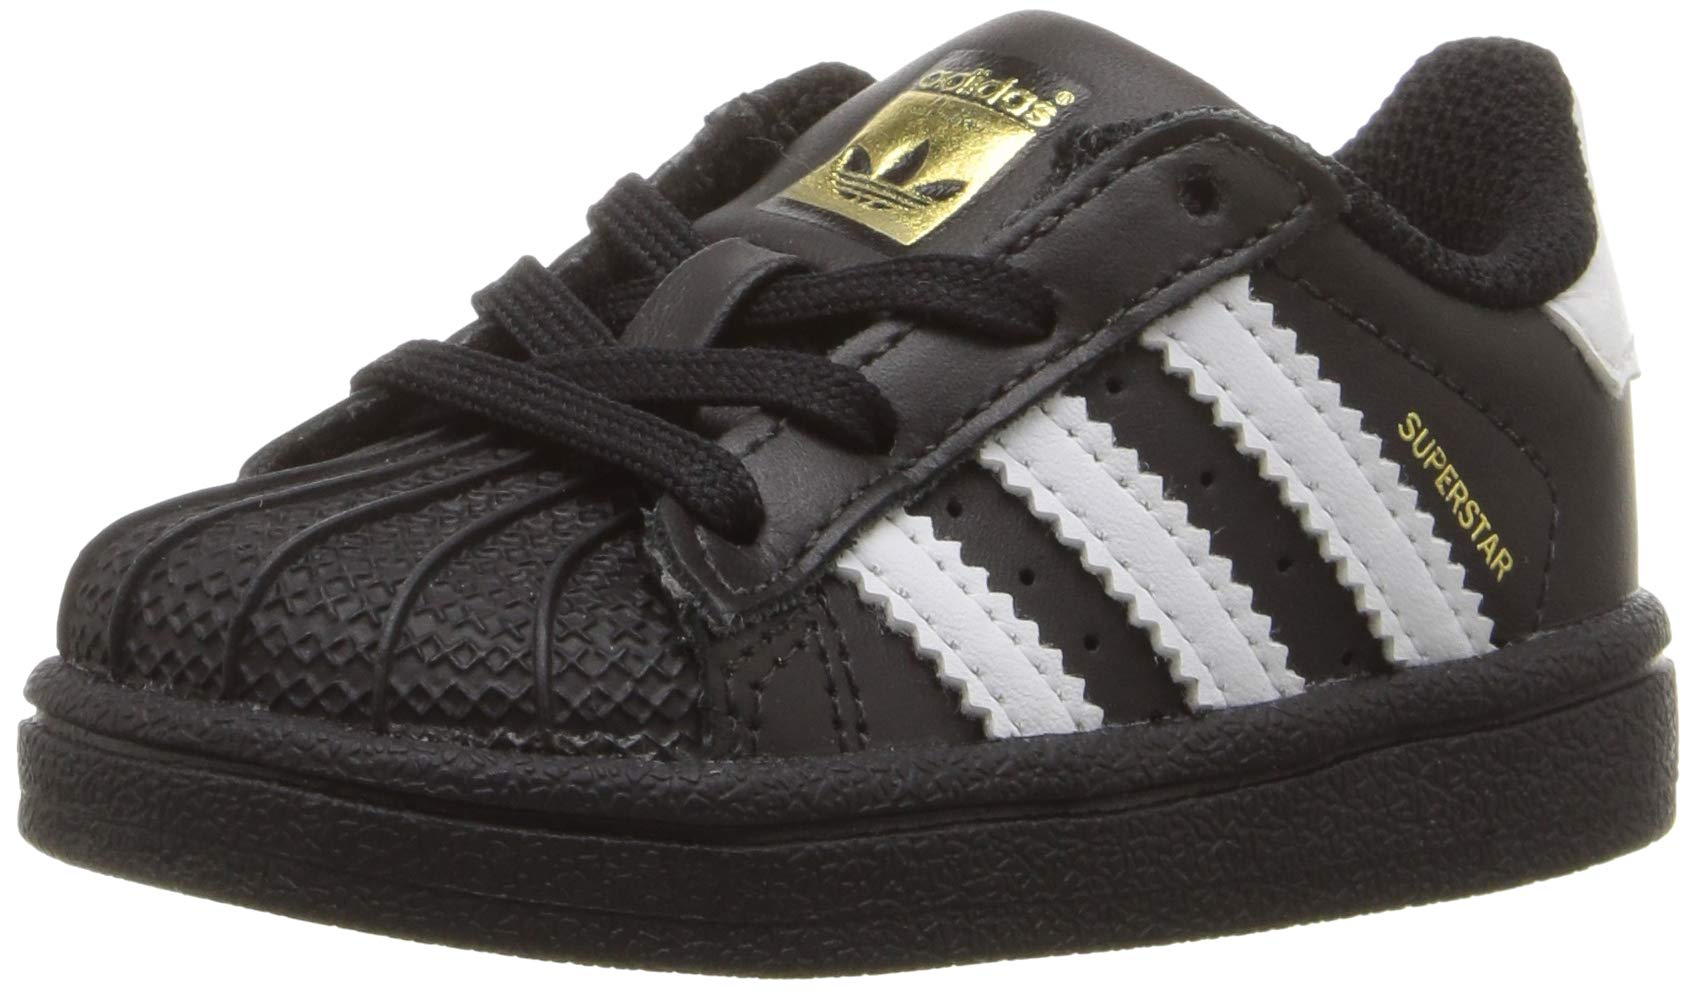 adidas Originals Baby Superstars Running Shoe, Black White, 10K M US Toddler